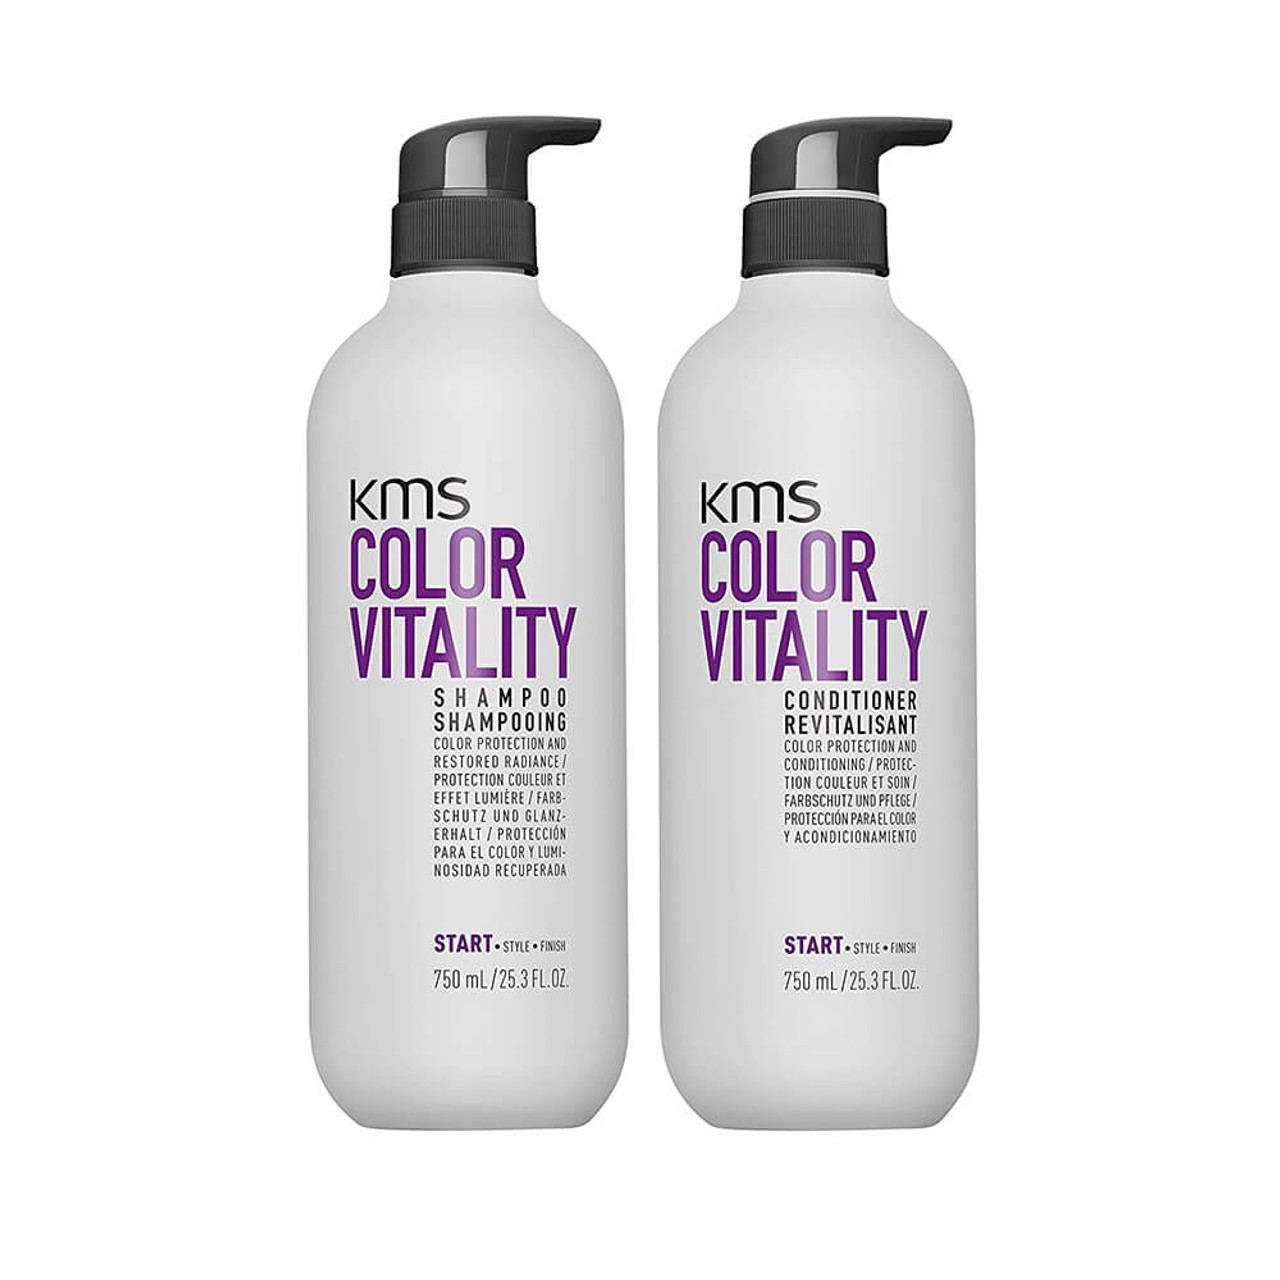 KMS Color Vitality Liter Duo